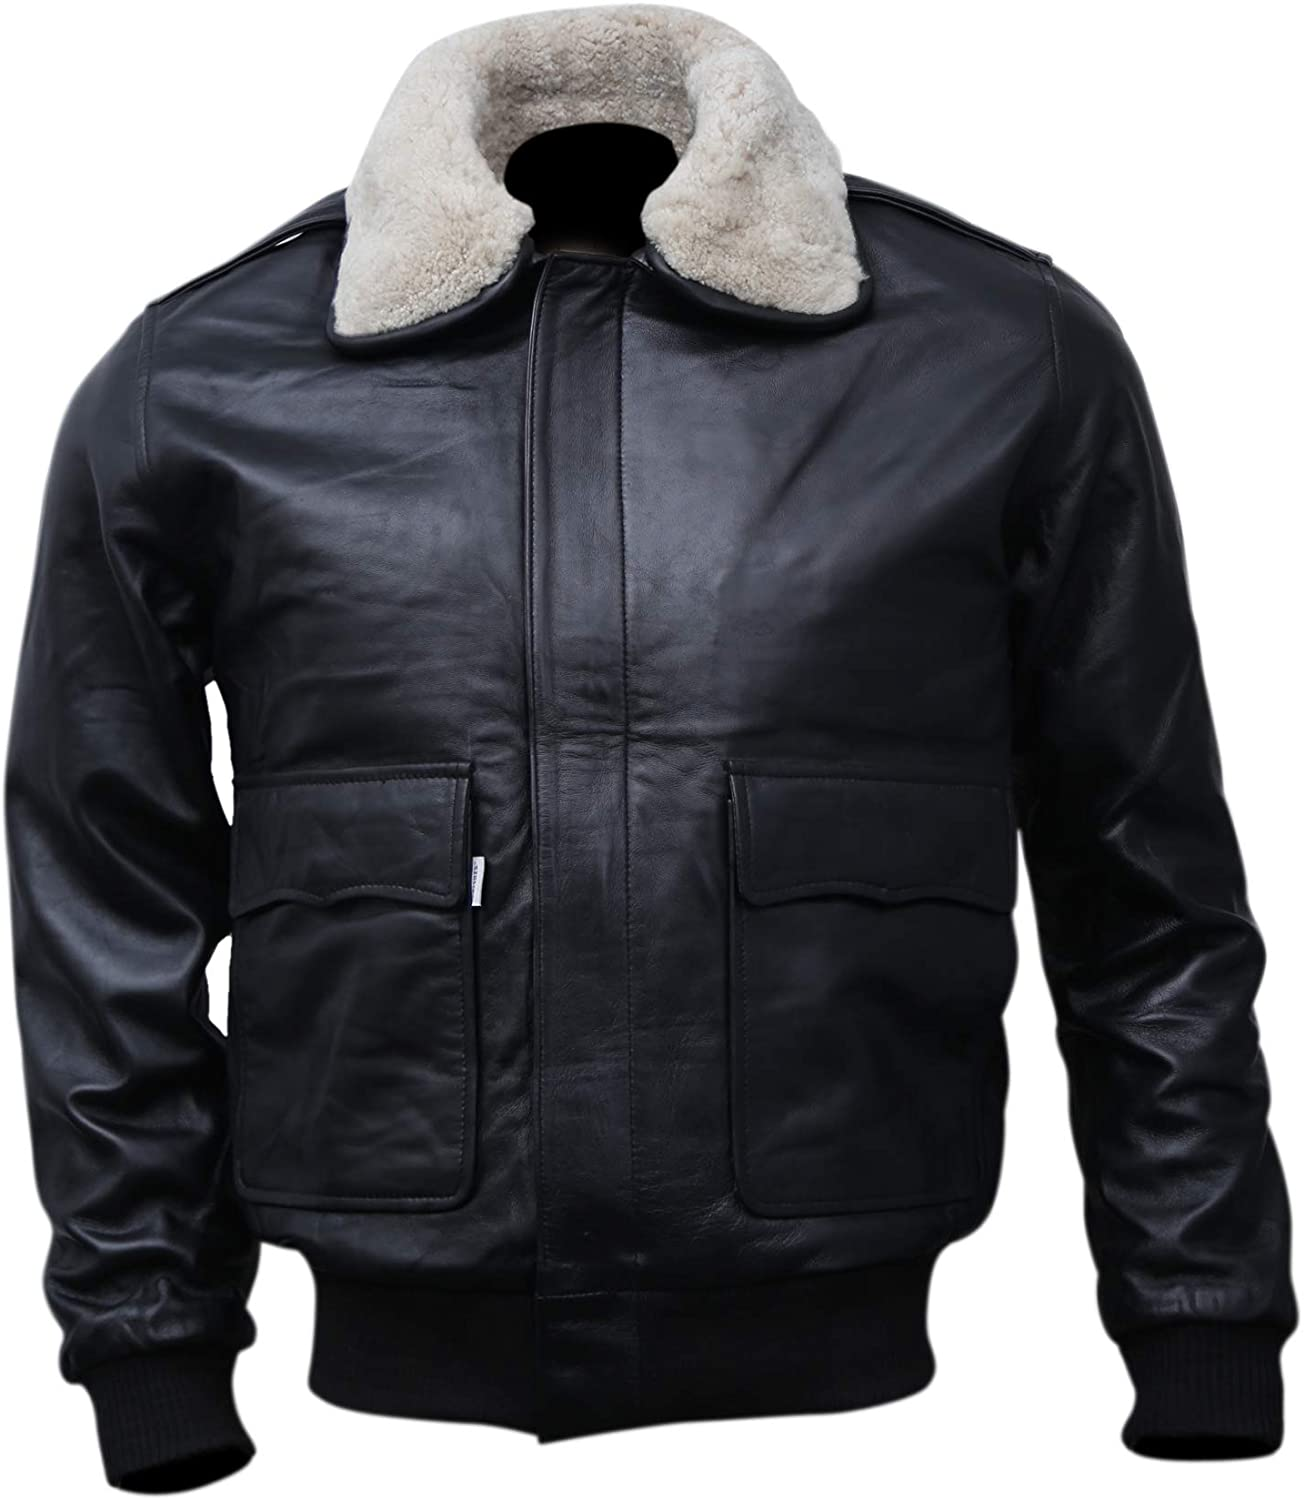 Mens A-2 Flight Bomber Leather Jacket Black | Aviator Air Force Brown Jackets for Men with Real Fur Collar